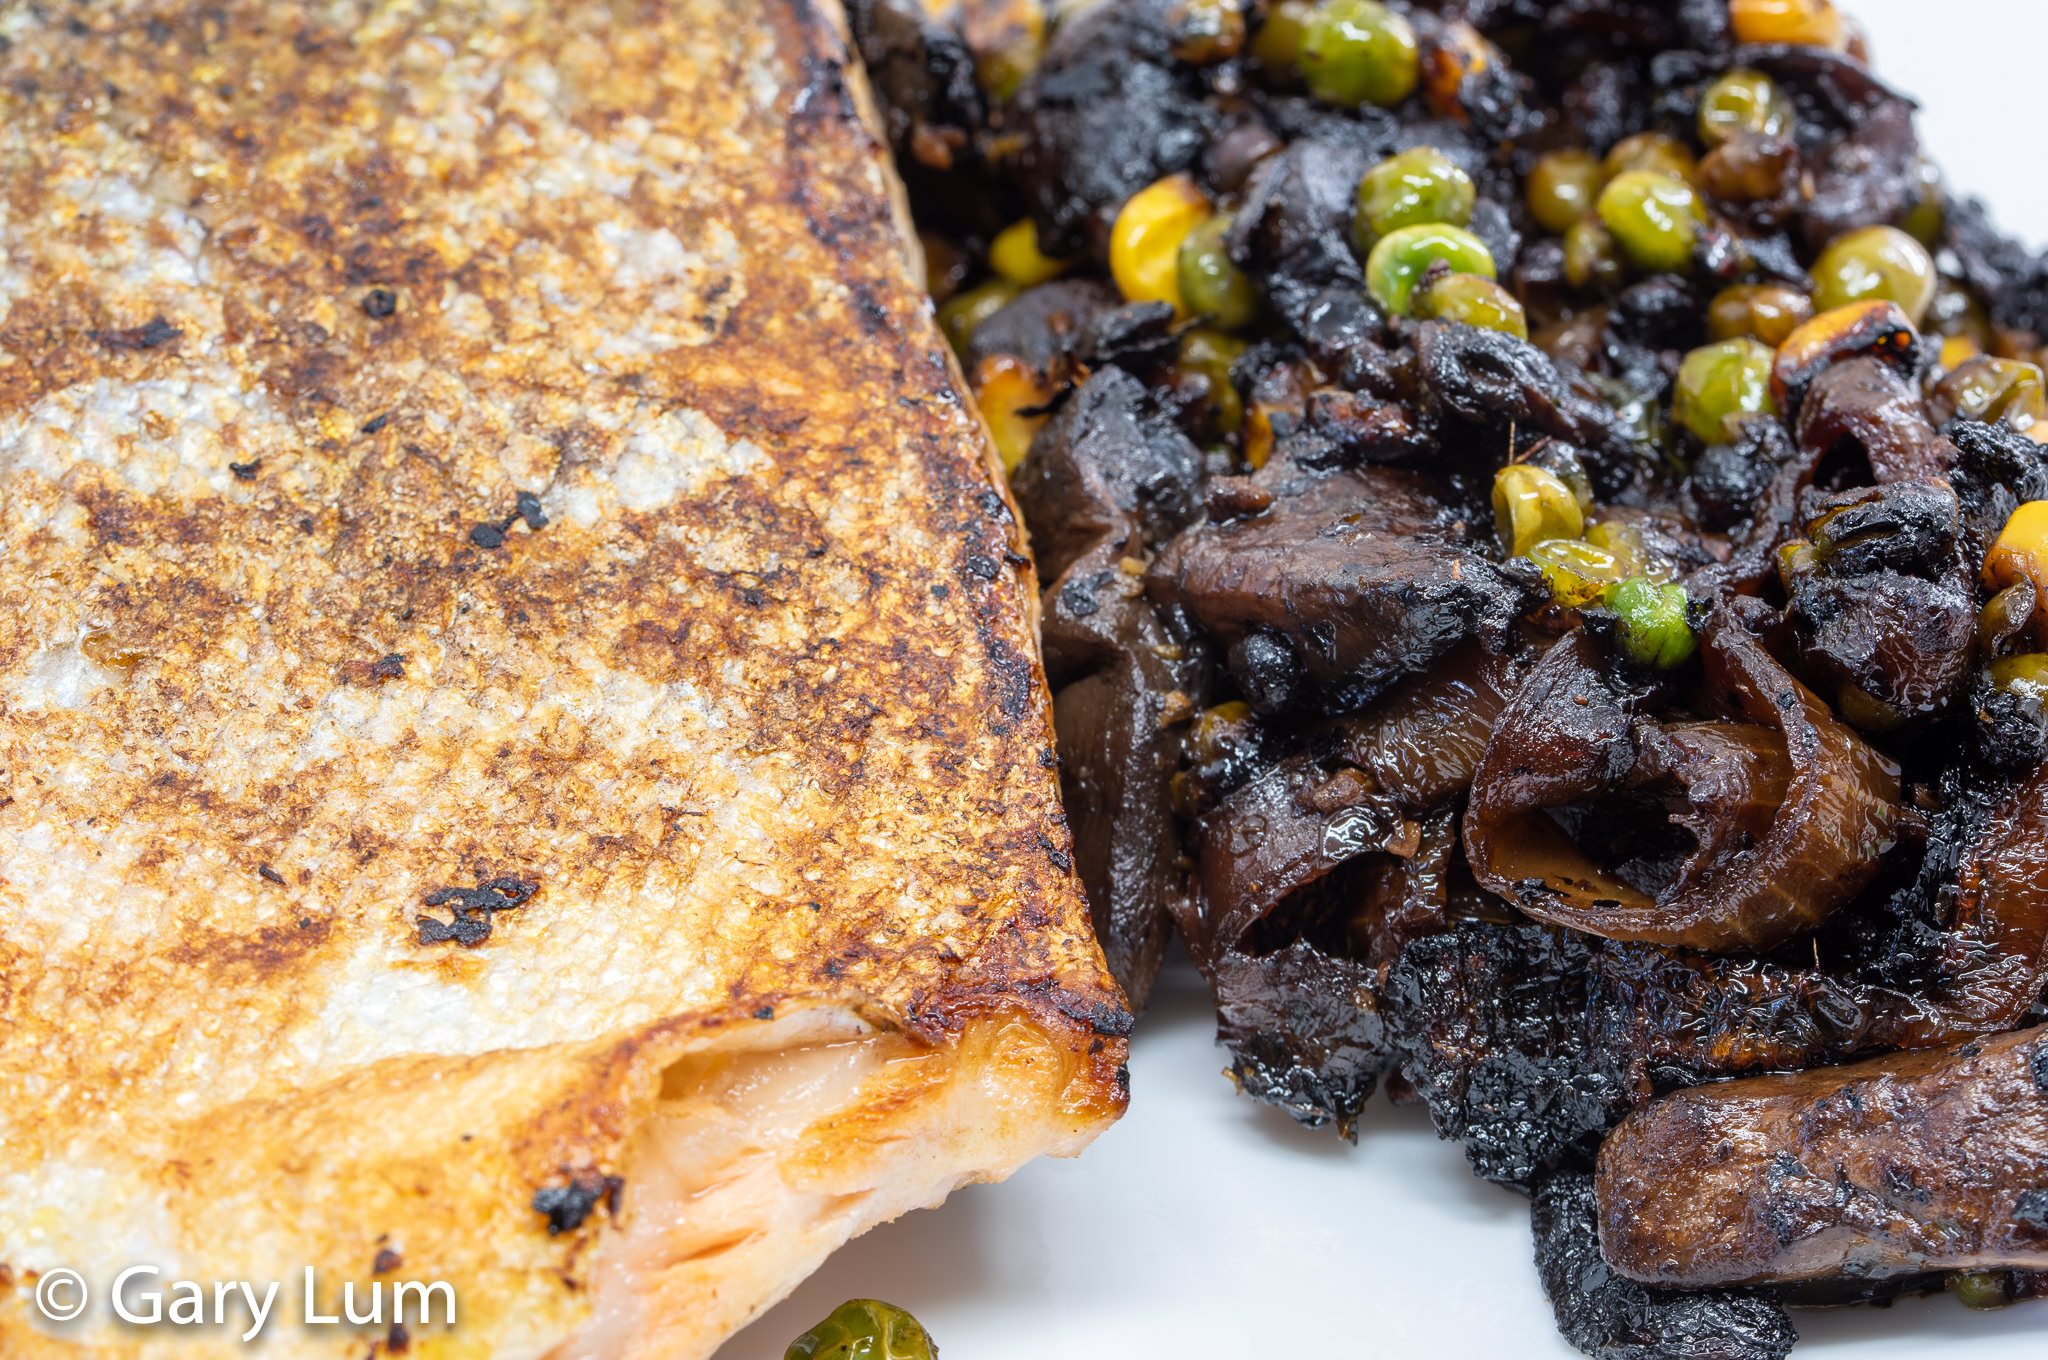 Close up. Pan-fried salmon with leftover onion and mushrooms and green and gold vegetables (peas and corn). Gary Lum.